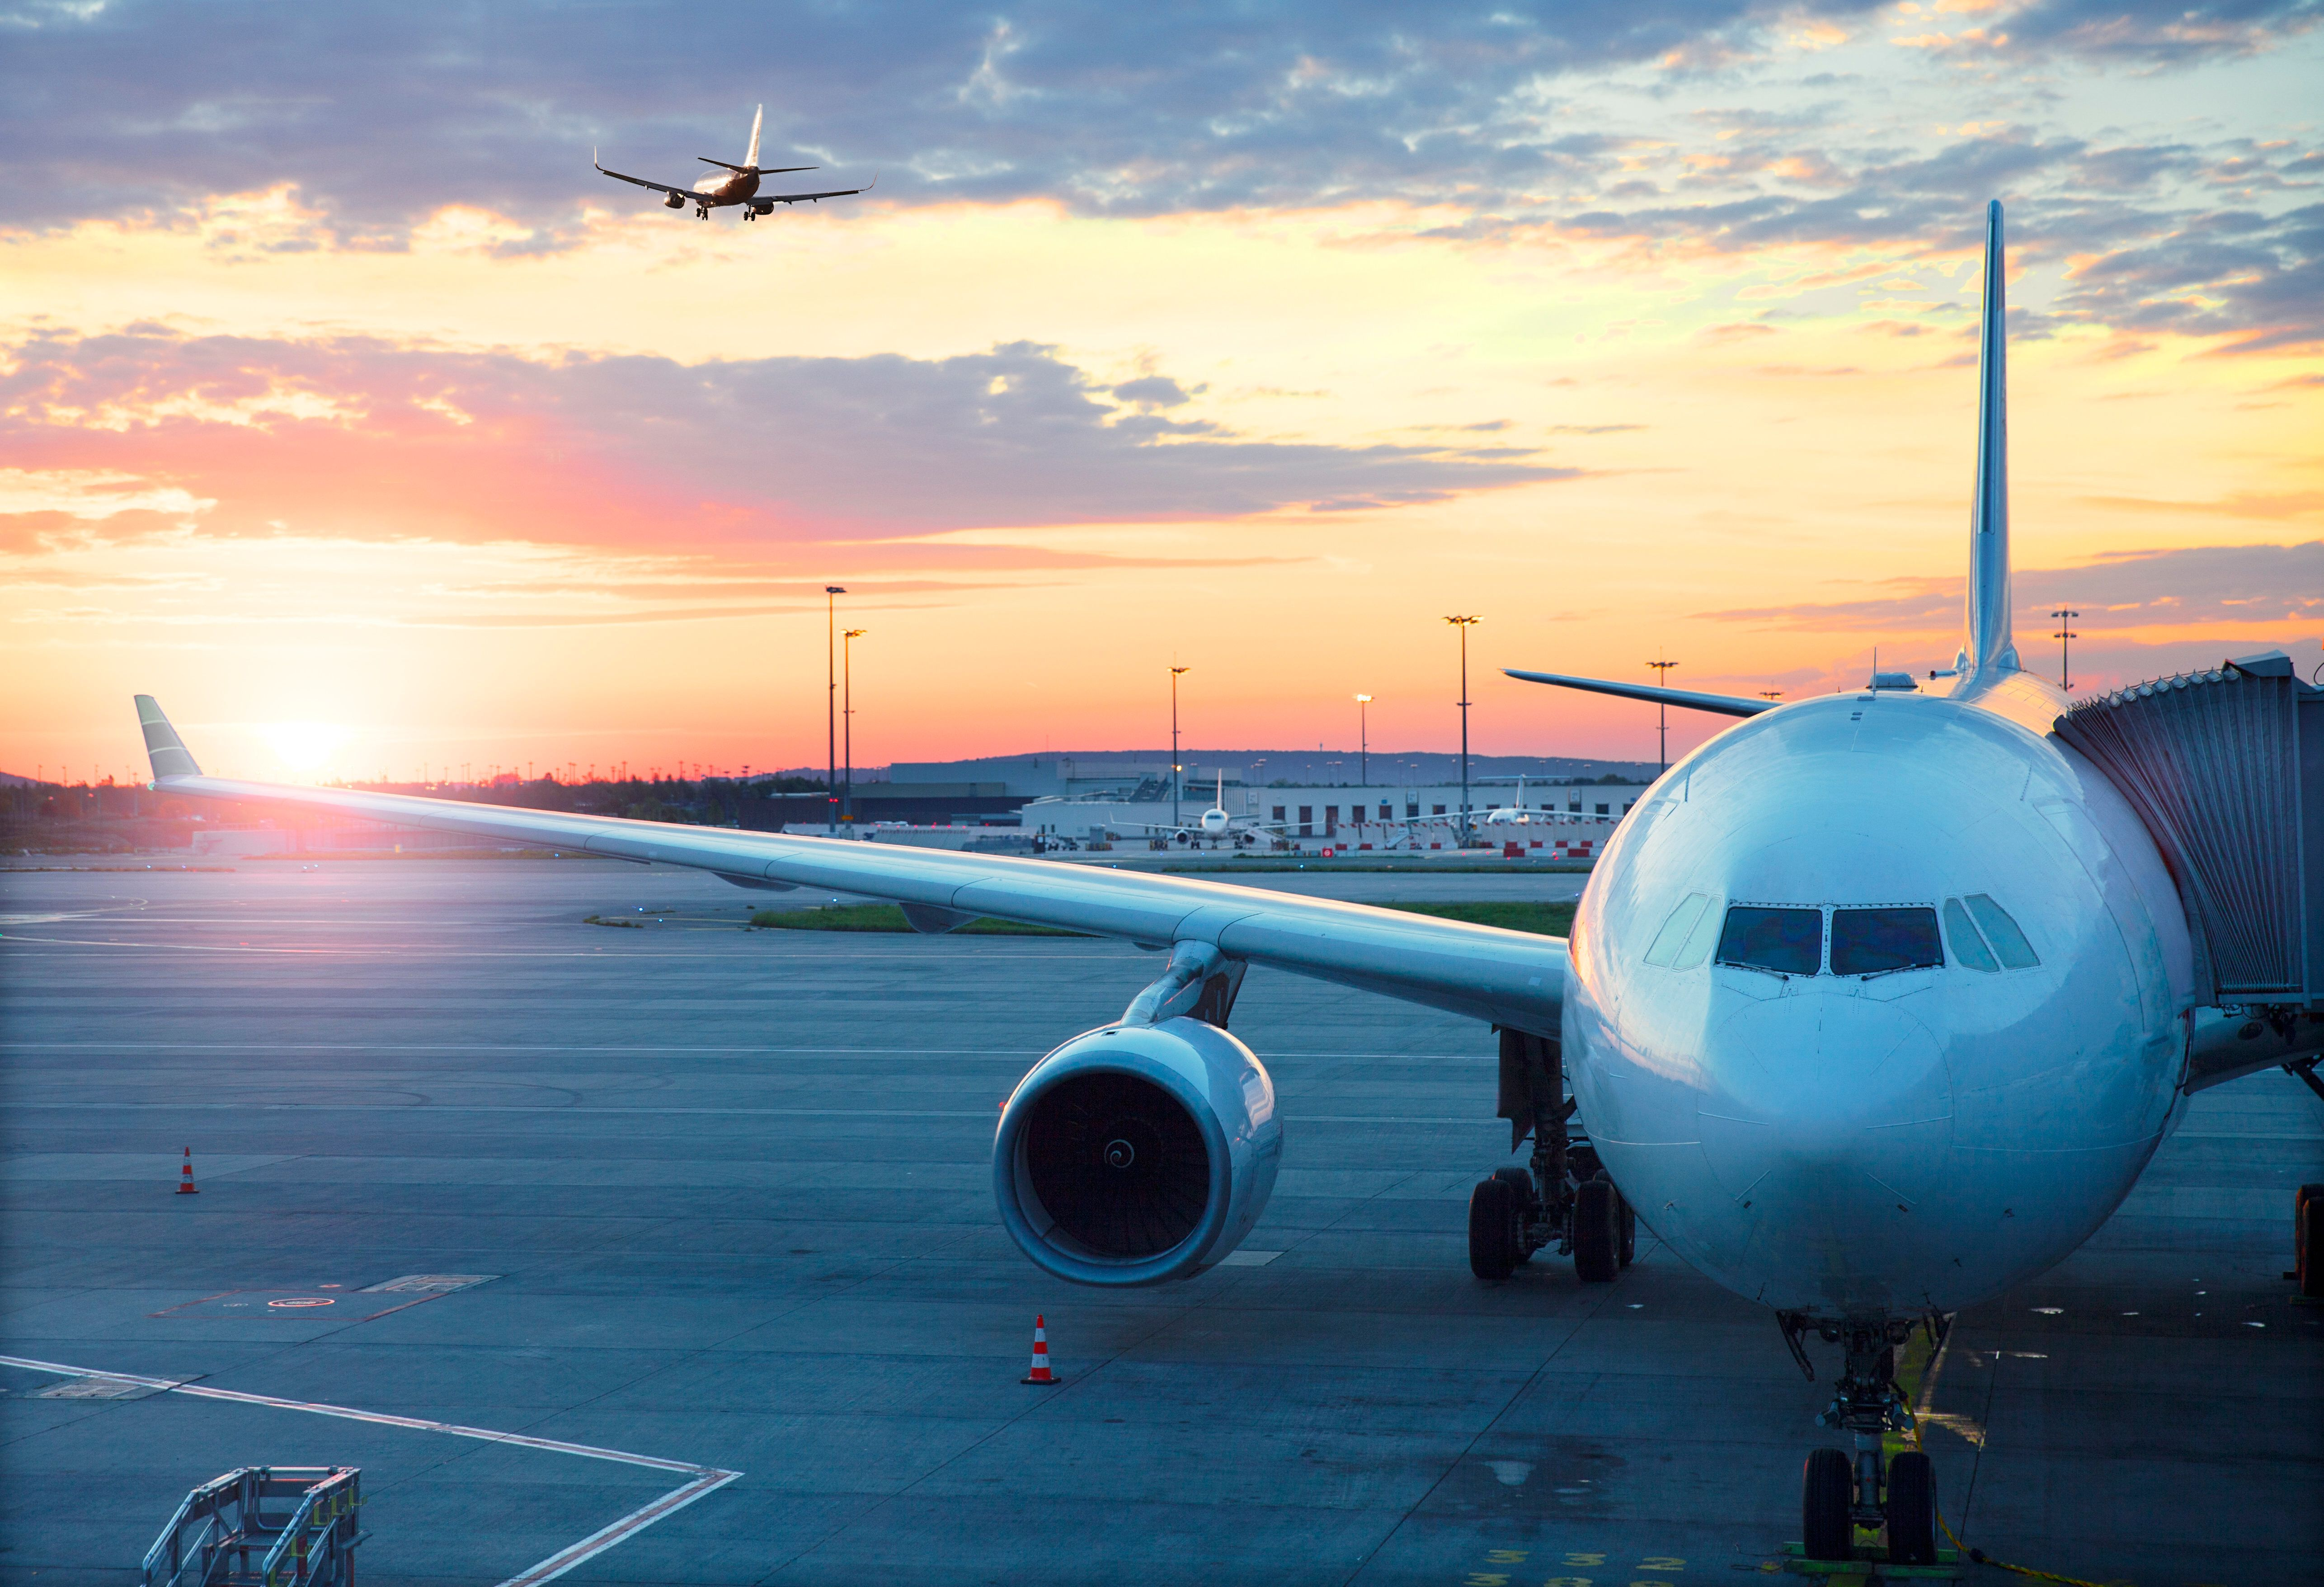 Charles De Gaulle , International airport in Paris -  Airplane at sunrise.